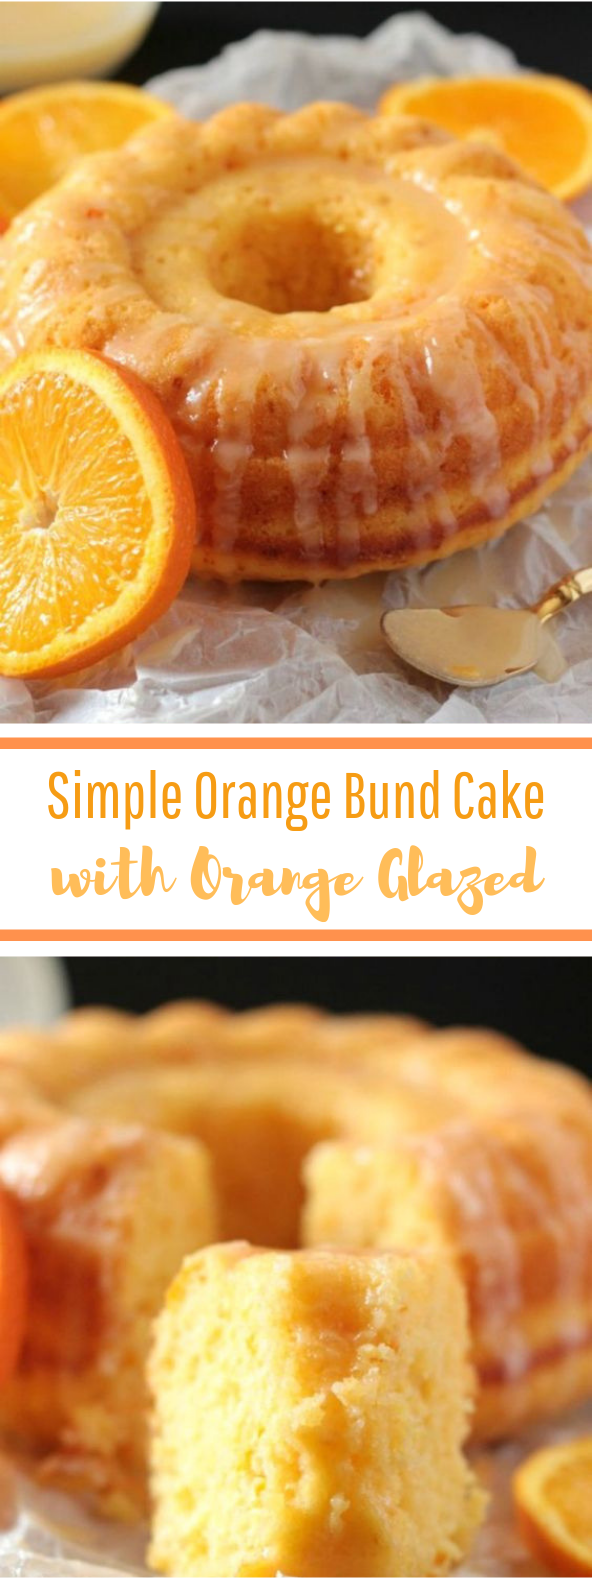 Easy Glazed Orange Bundt Cake #teatime #cake